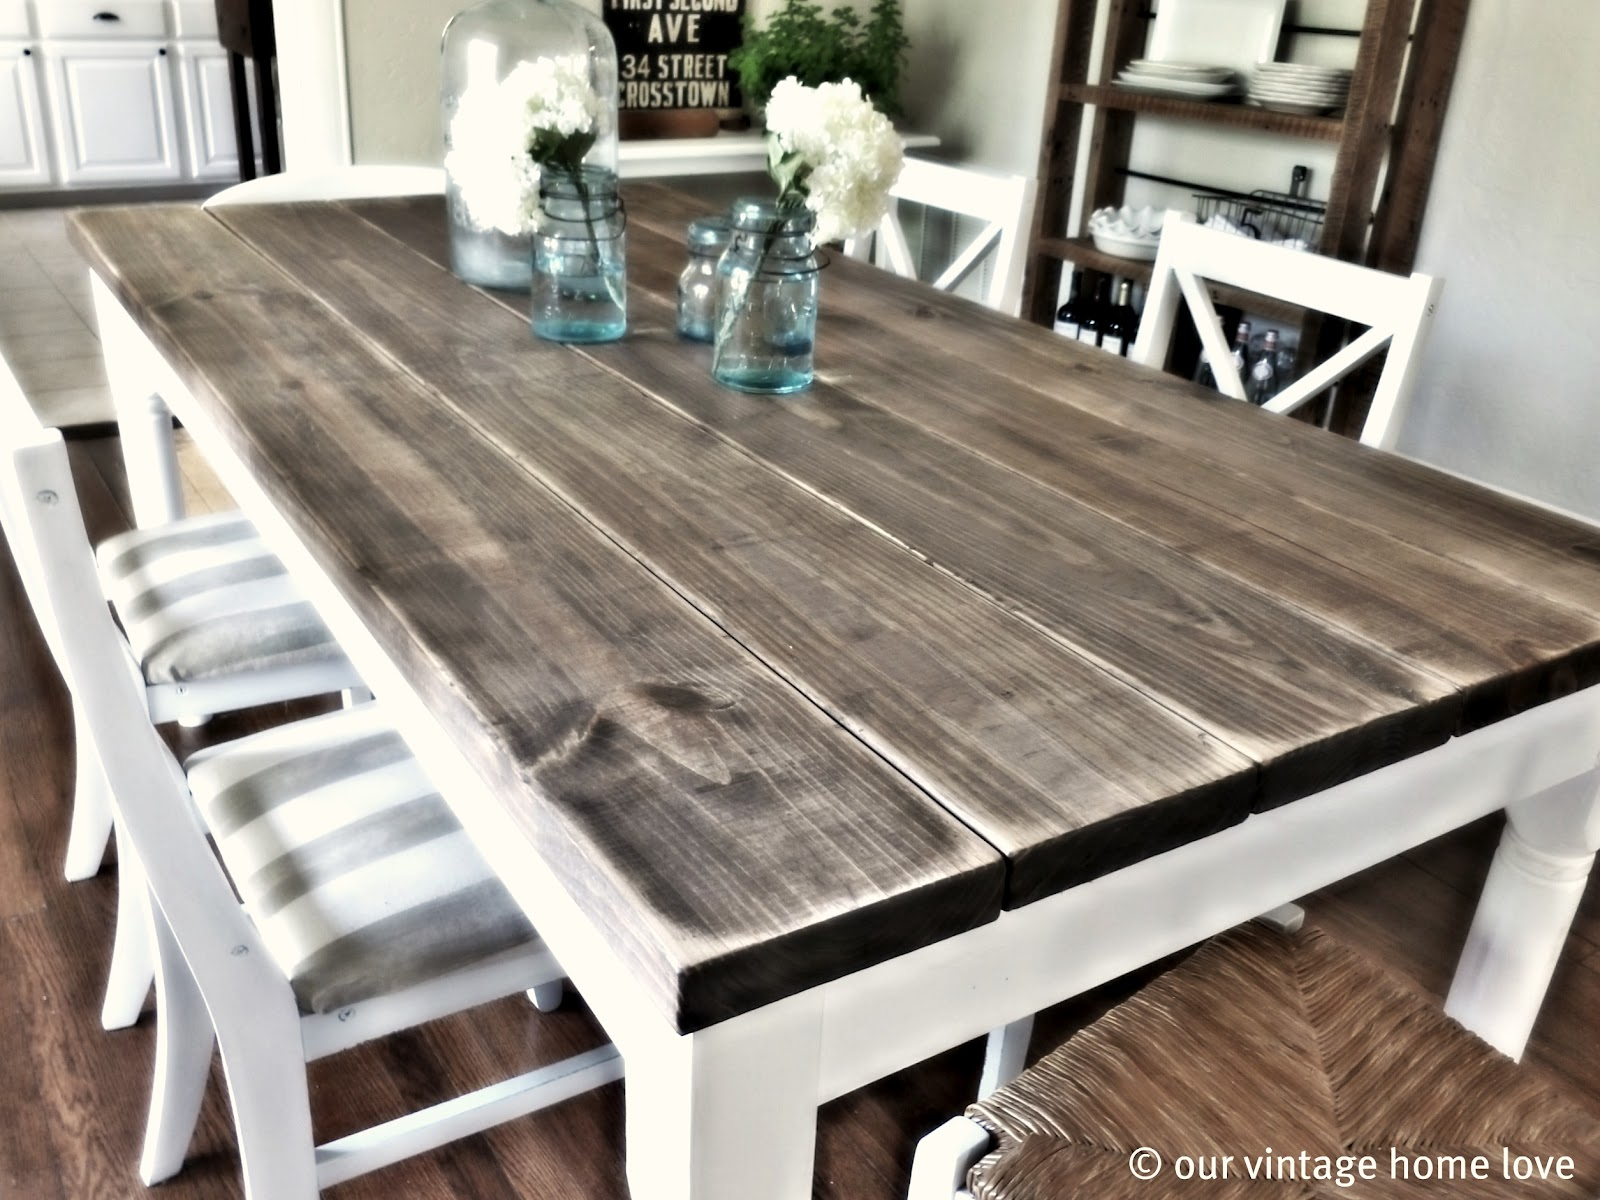 Surprising Vintage Home Love Dining Room Table Tutorial Download Free Architecture Designs Xaembritishbridgeorg